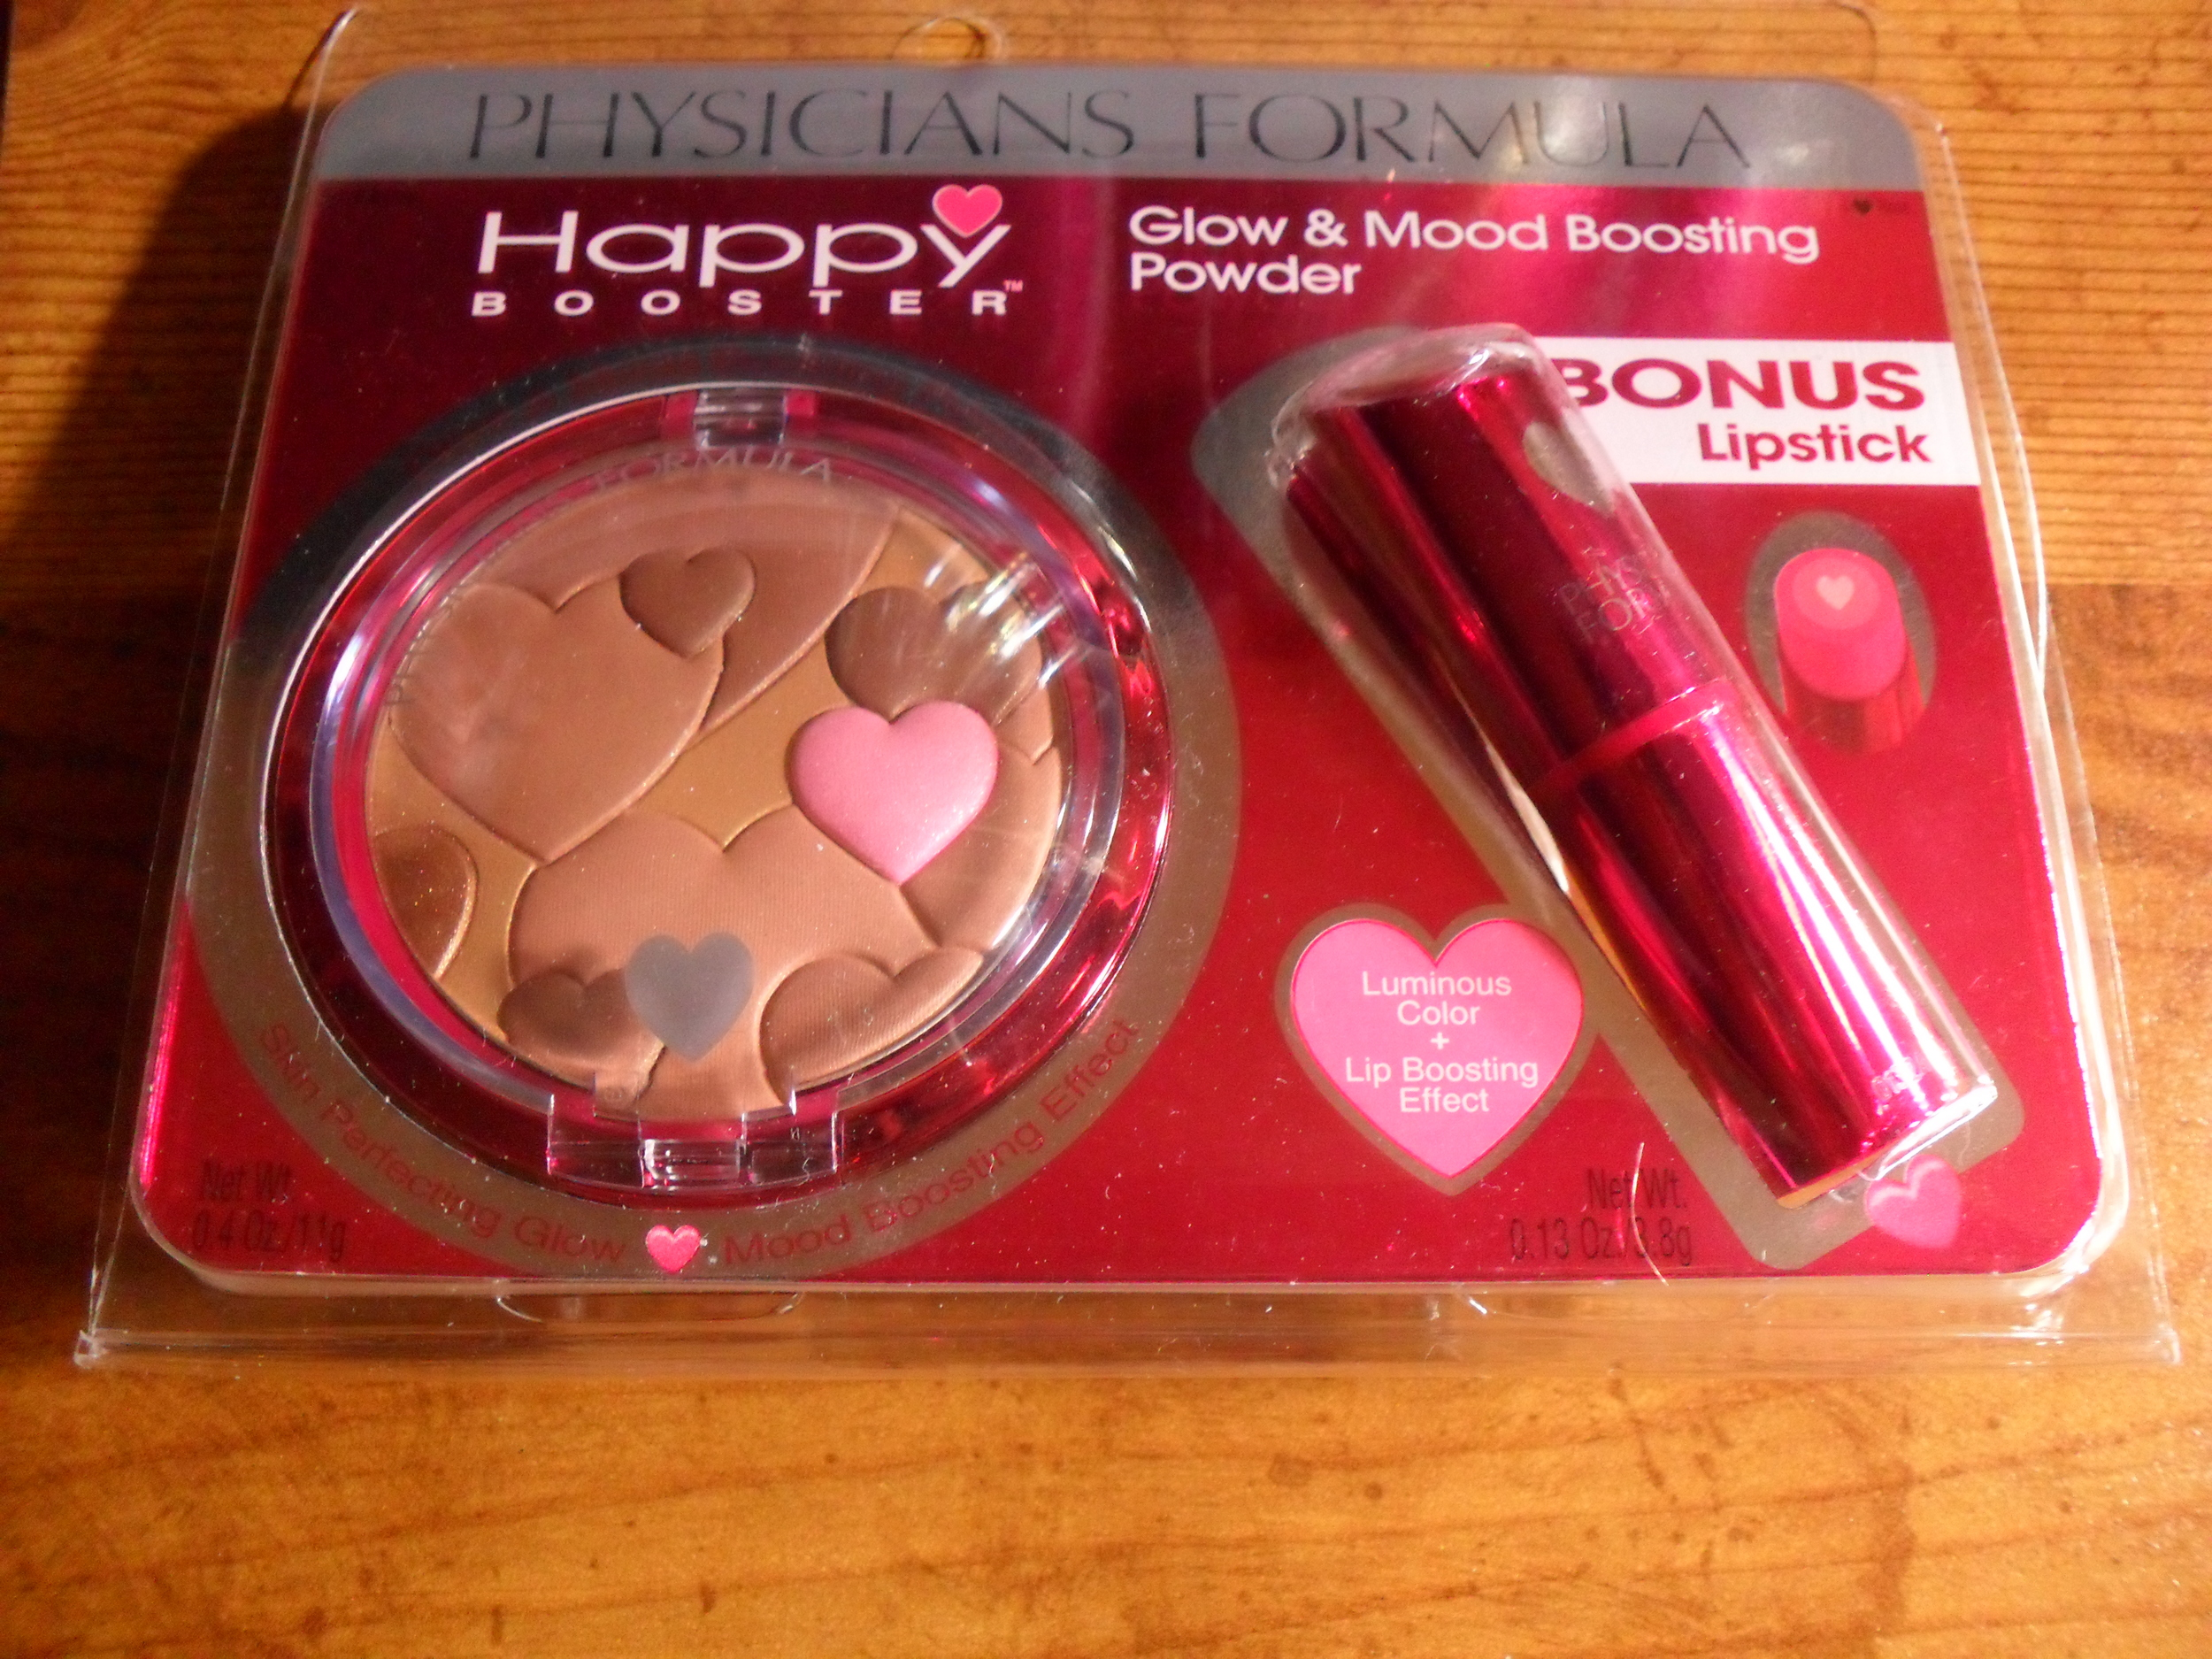 physician's formula happy booster bronzer and lipstick